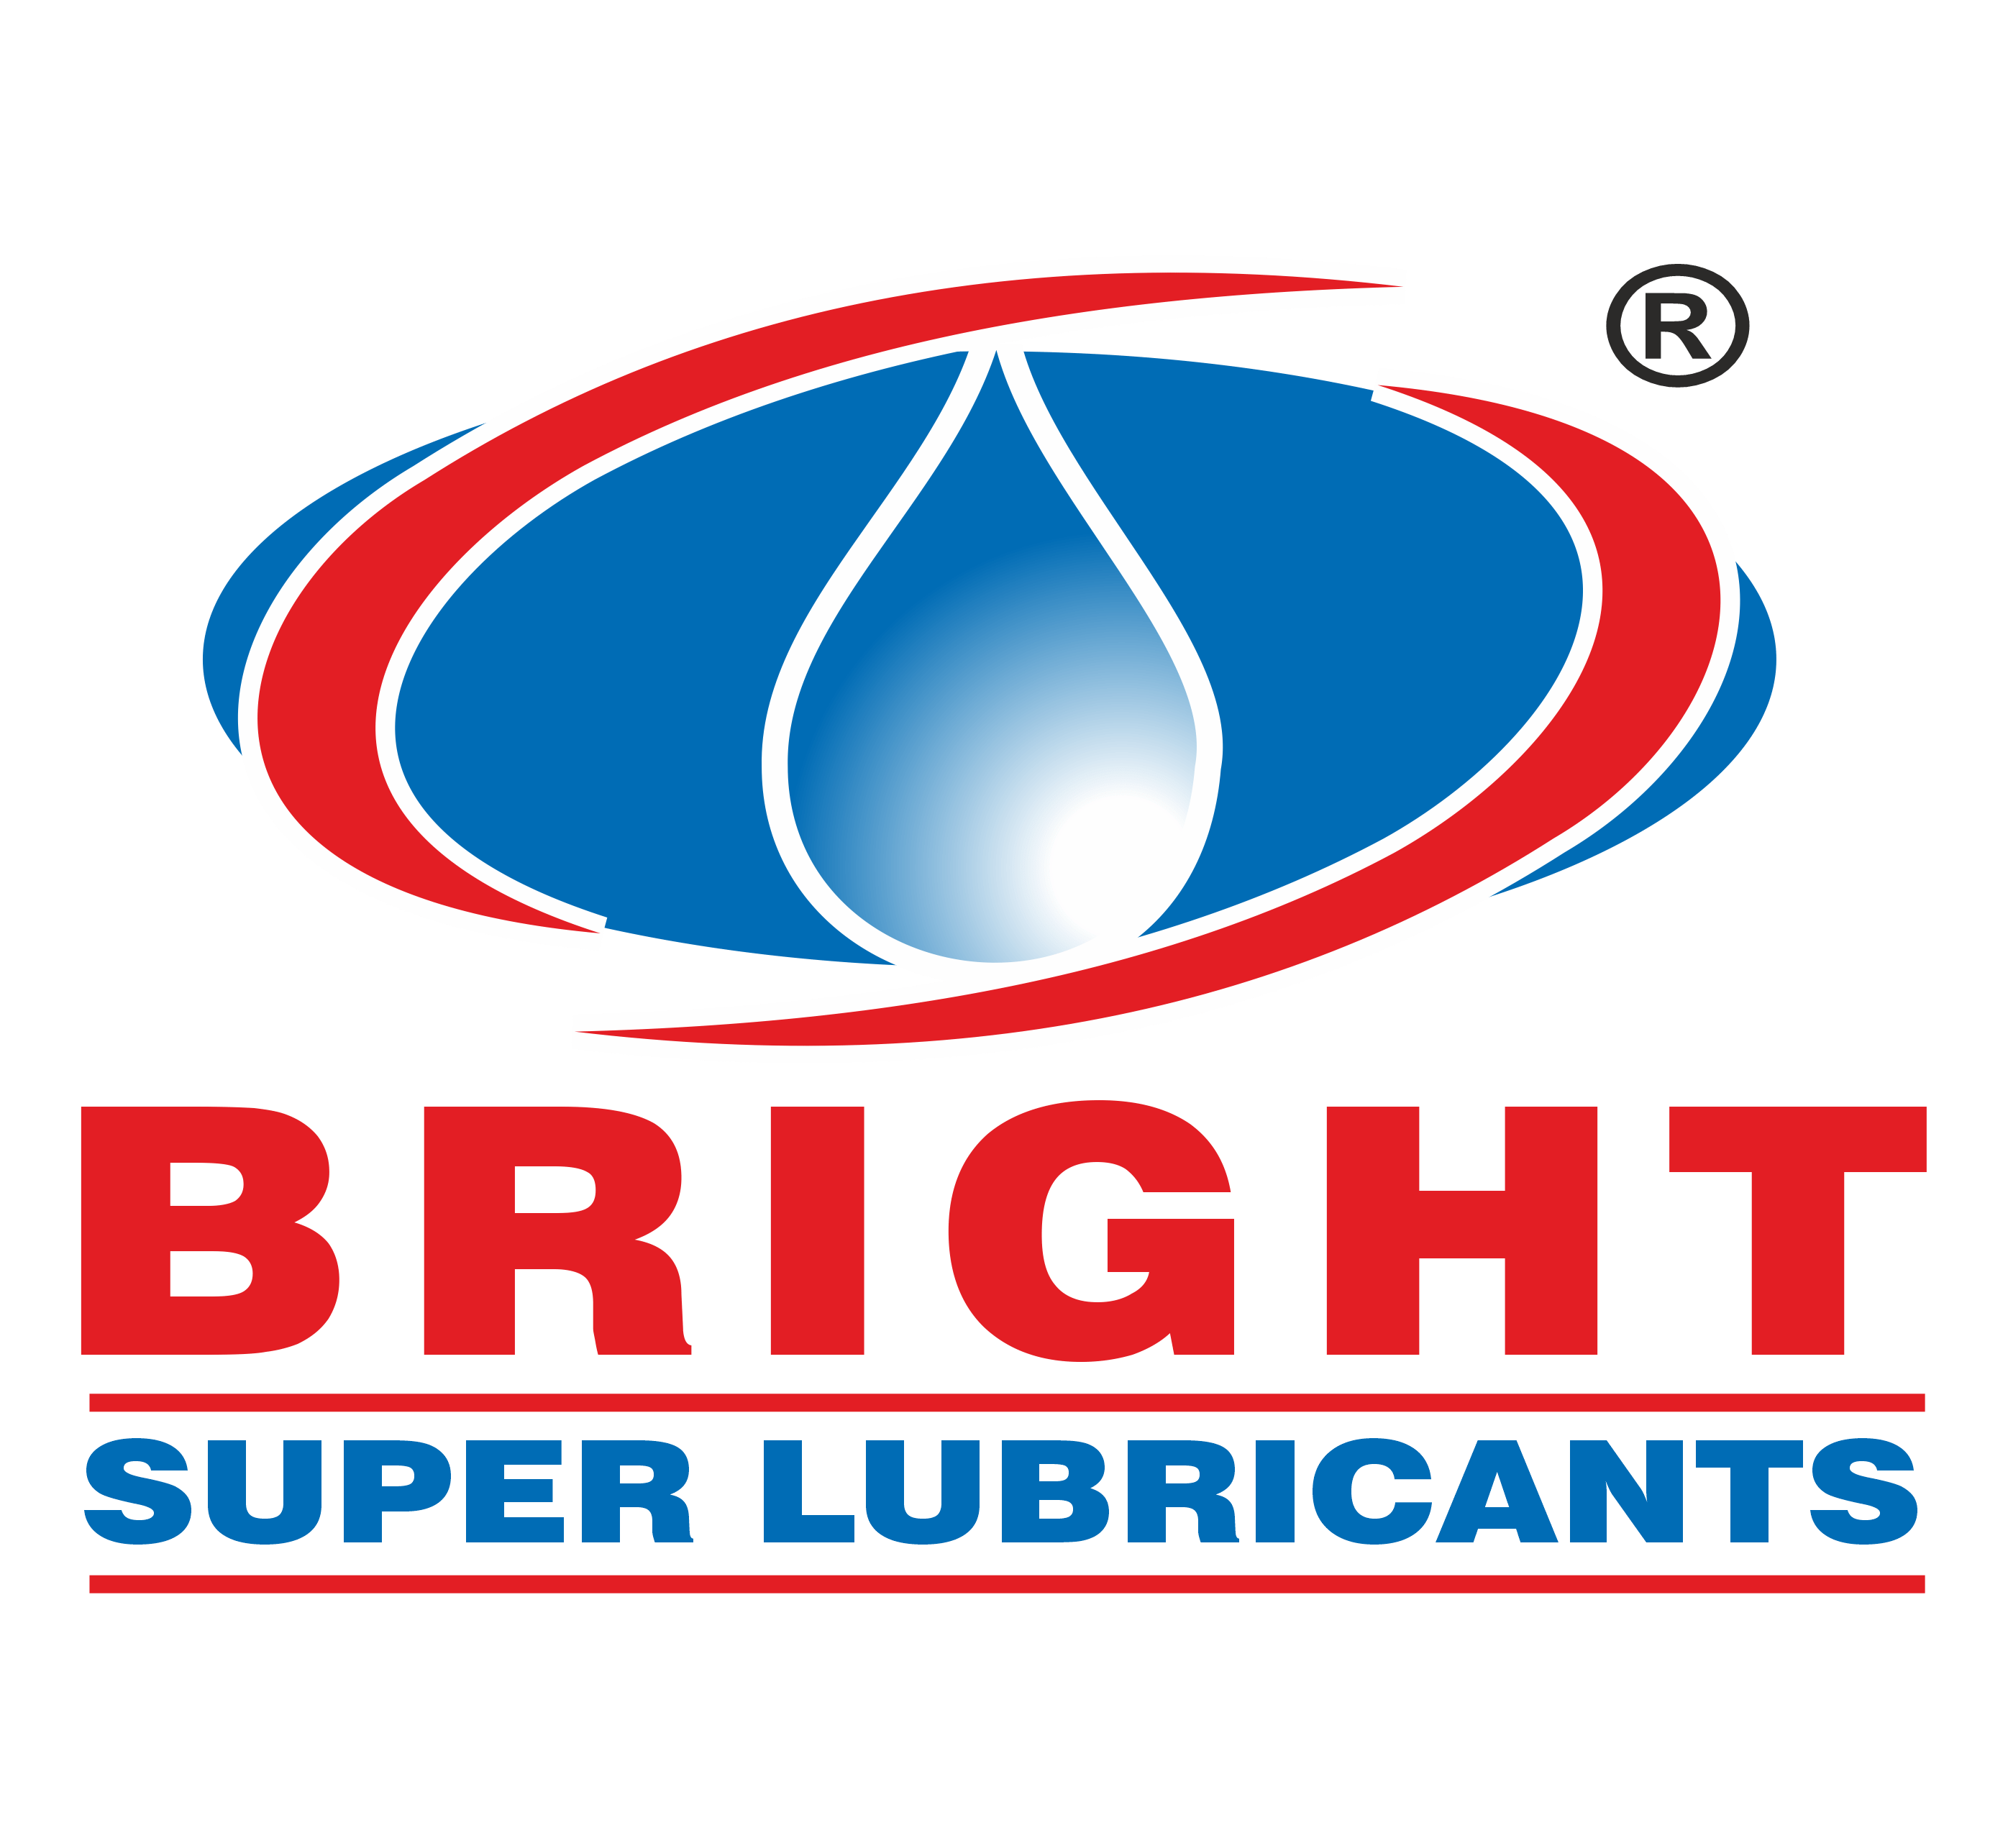 Bright Super Lubricants